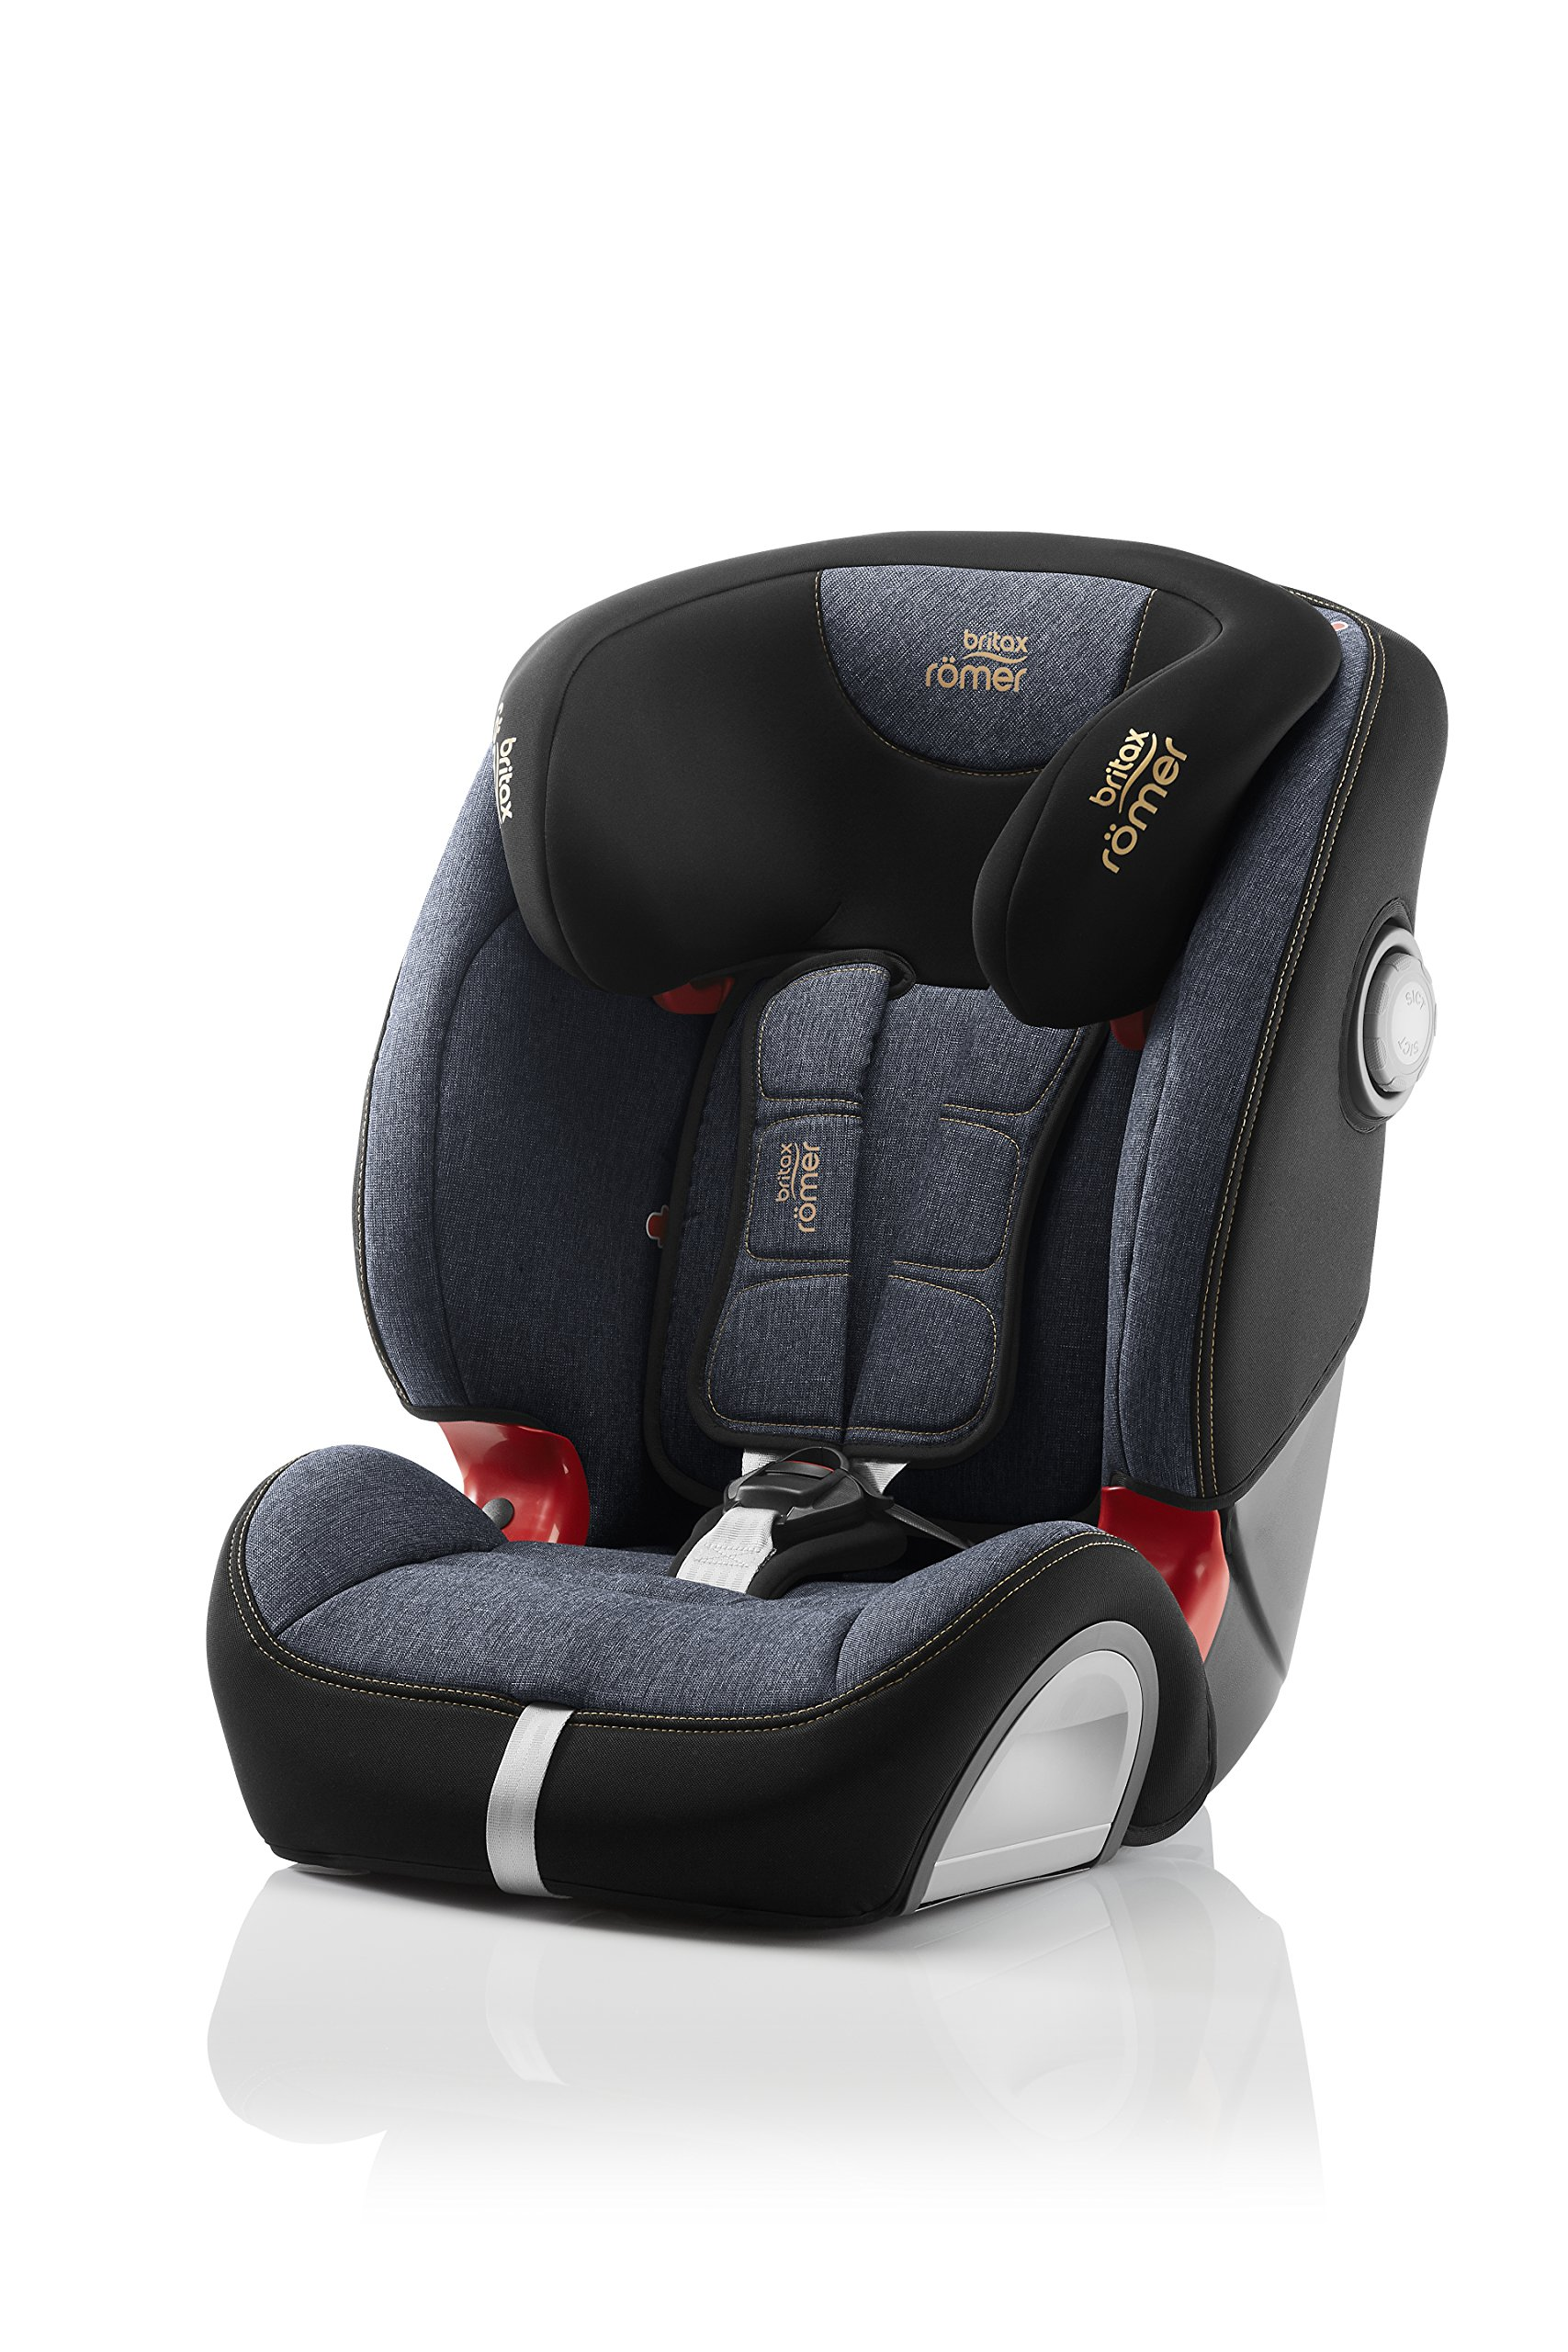 Britax Römer EVOLVA 1-2-3 SL SICT Group 1-2-3 (9-36kg) Car Seat - Blue Marble  This EVOLVA 1-2-3 SL SICT will come in a Blue Marble design cover which is made from a more premium fabric with extra detailing Enhanced Side Impact Protection (SICT) minimises the force of an impact in a side collision CLICK & SAFE audible harness system for that extra reassurance when securing your child in the seat 1